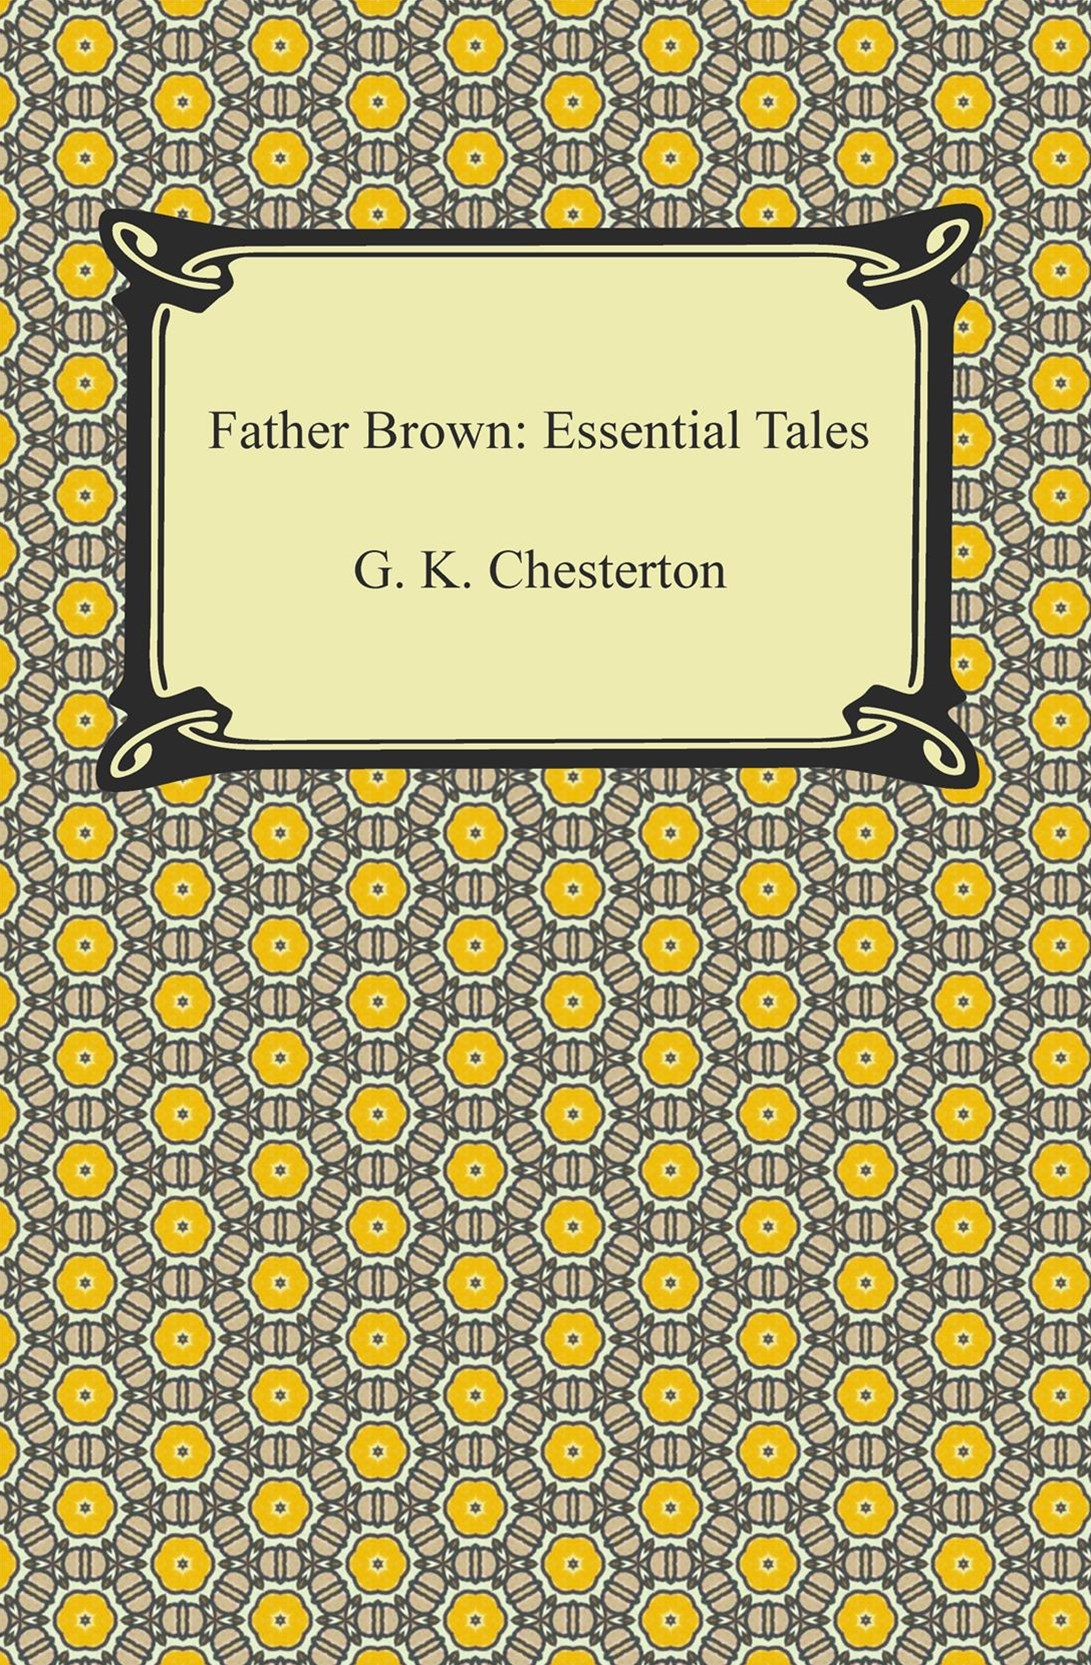 Father Brown: Essential Tales